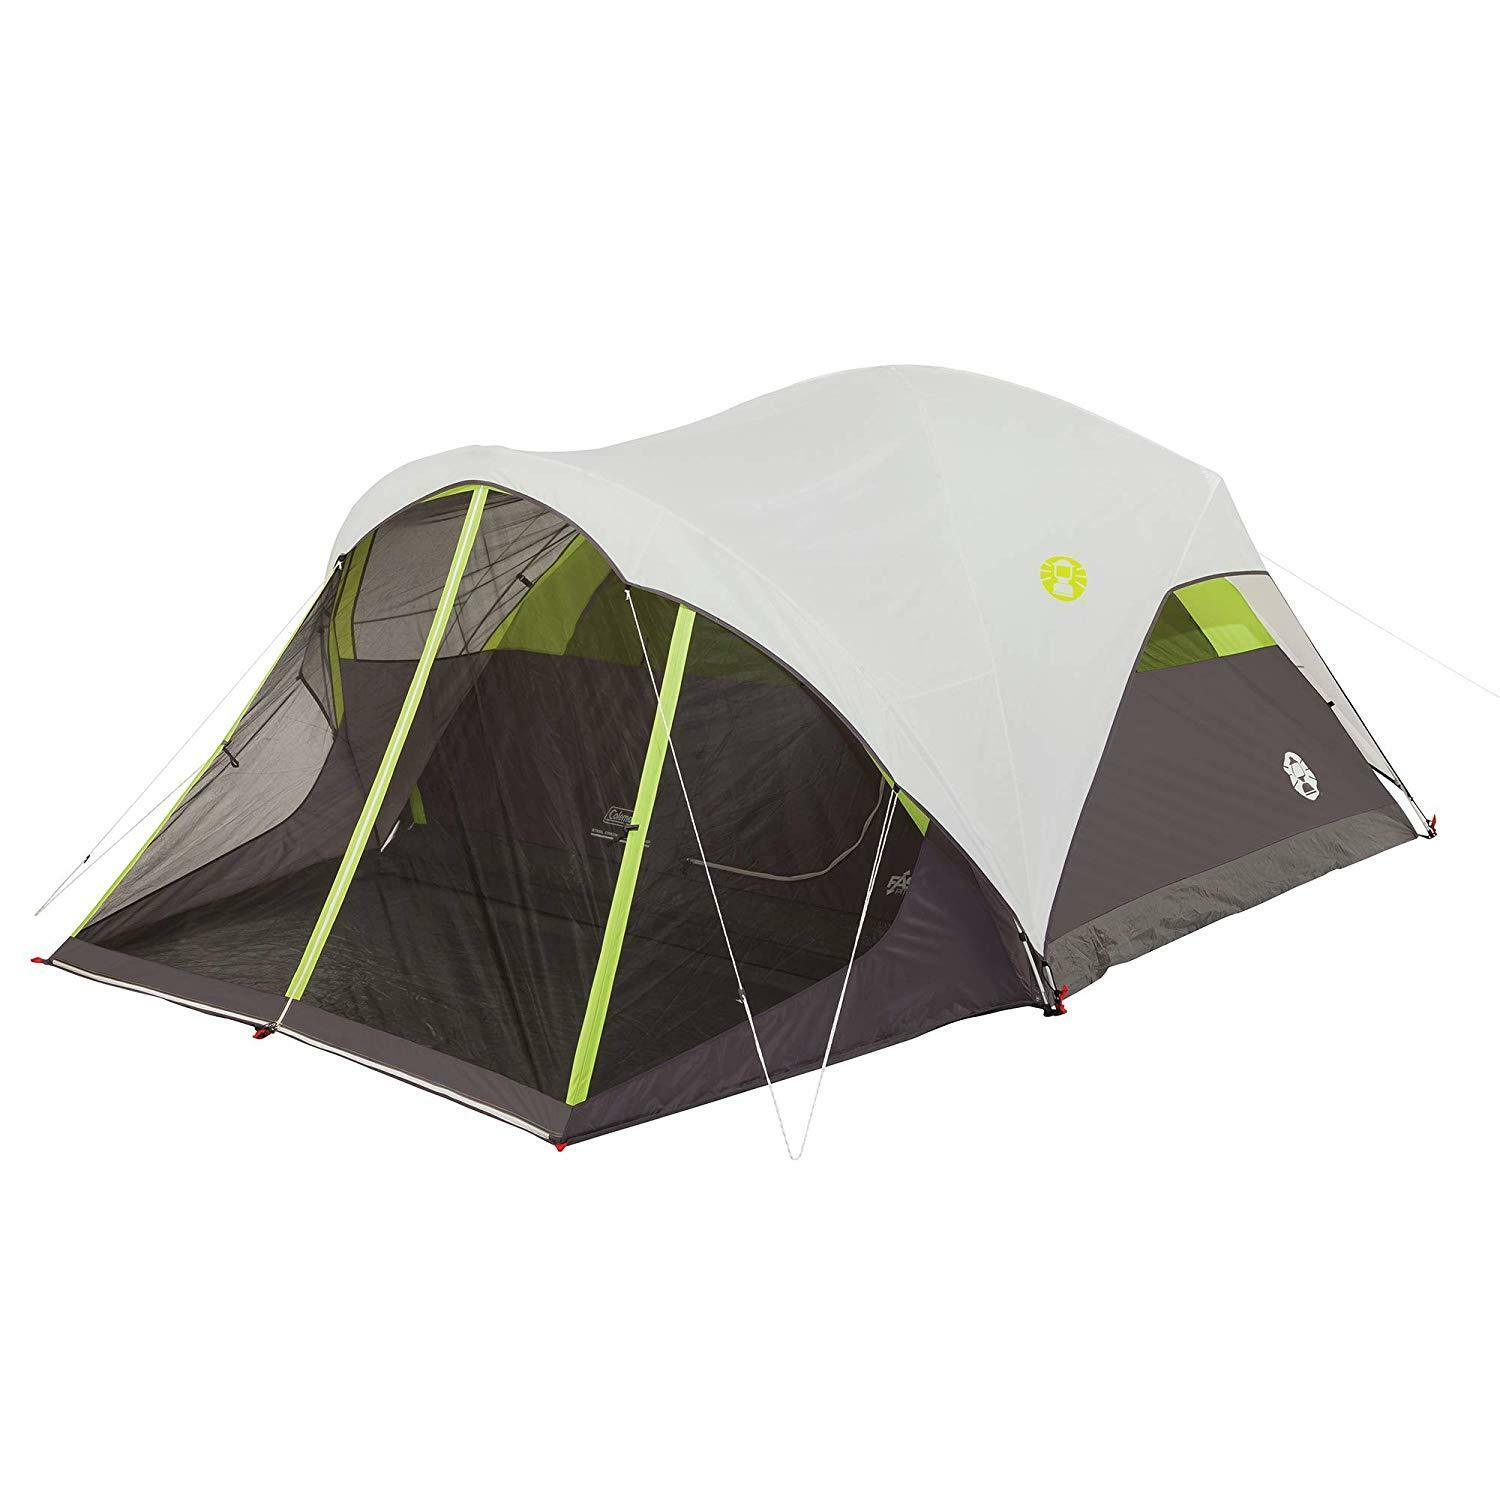 Steel Creek Fast Pitch Dome Tent  with Screen Room, 6-Person 10X9, 5'8  Center  low prices